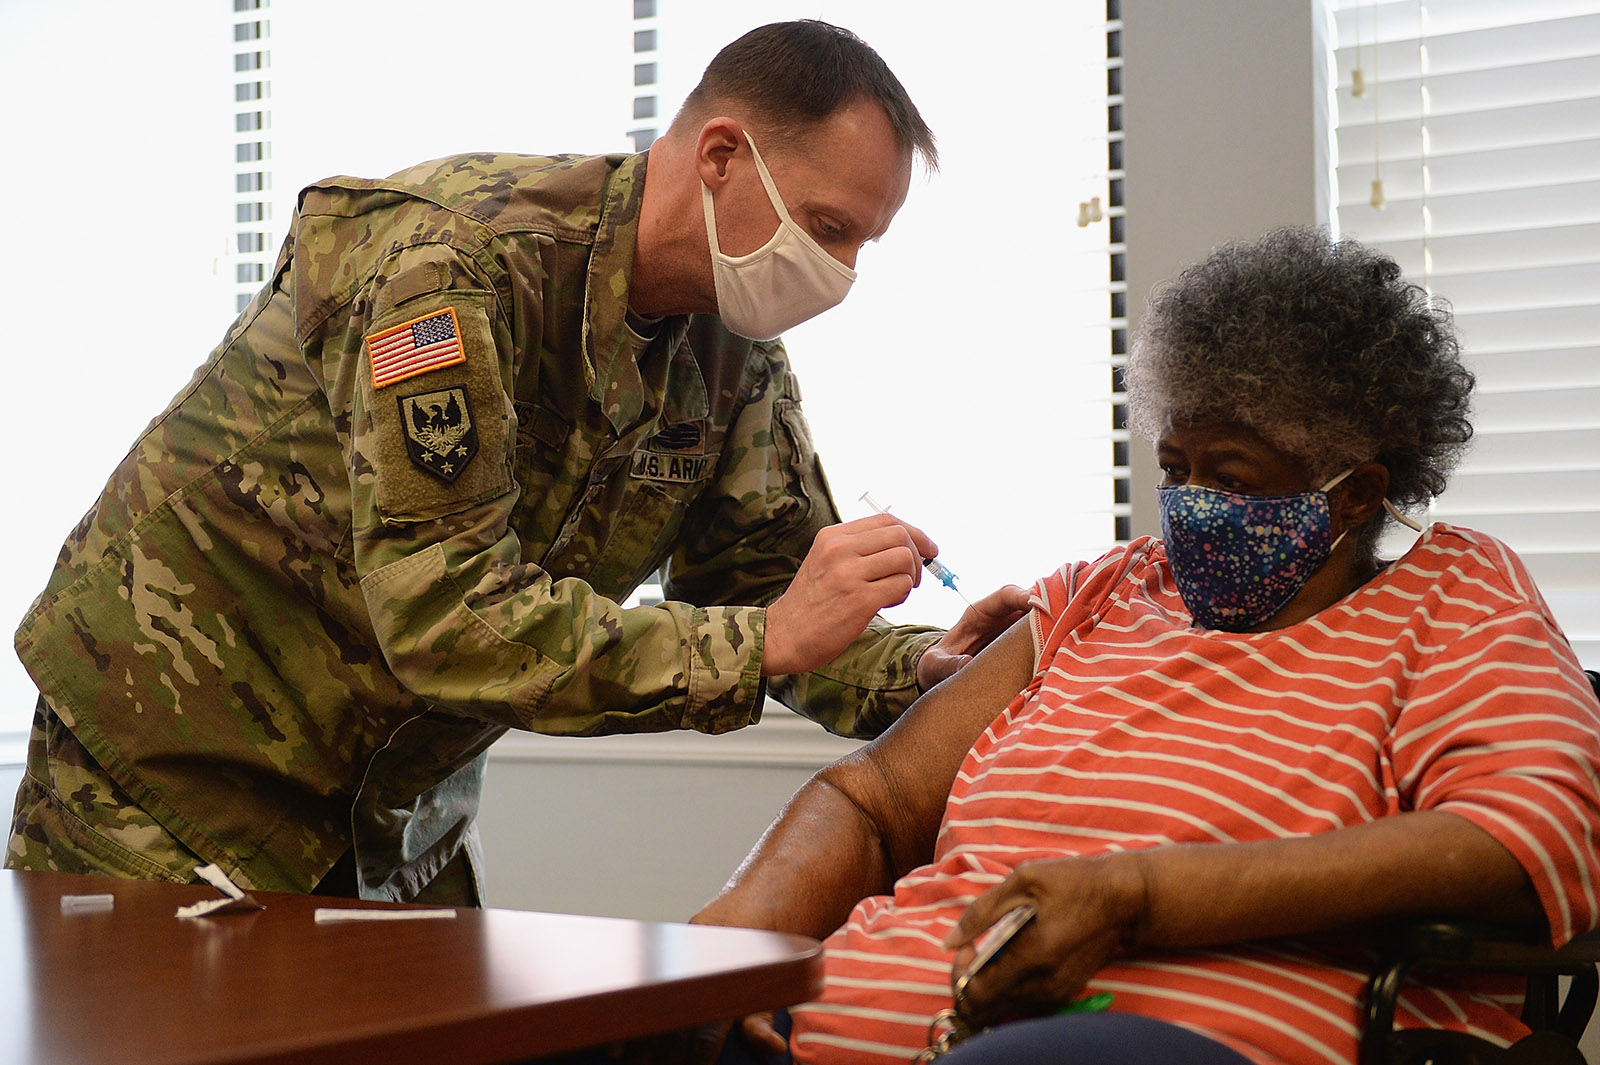 Staff Sgt. Herbert Lins of the Missouri Army National Guard administers the Covid-19 vaccine to a resident during a vaccination event on February 11 at the Jeff Vander Lou senior living facility in St. Louis, Missouri.